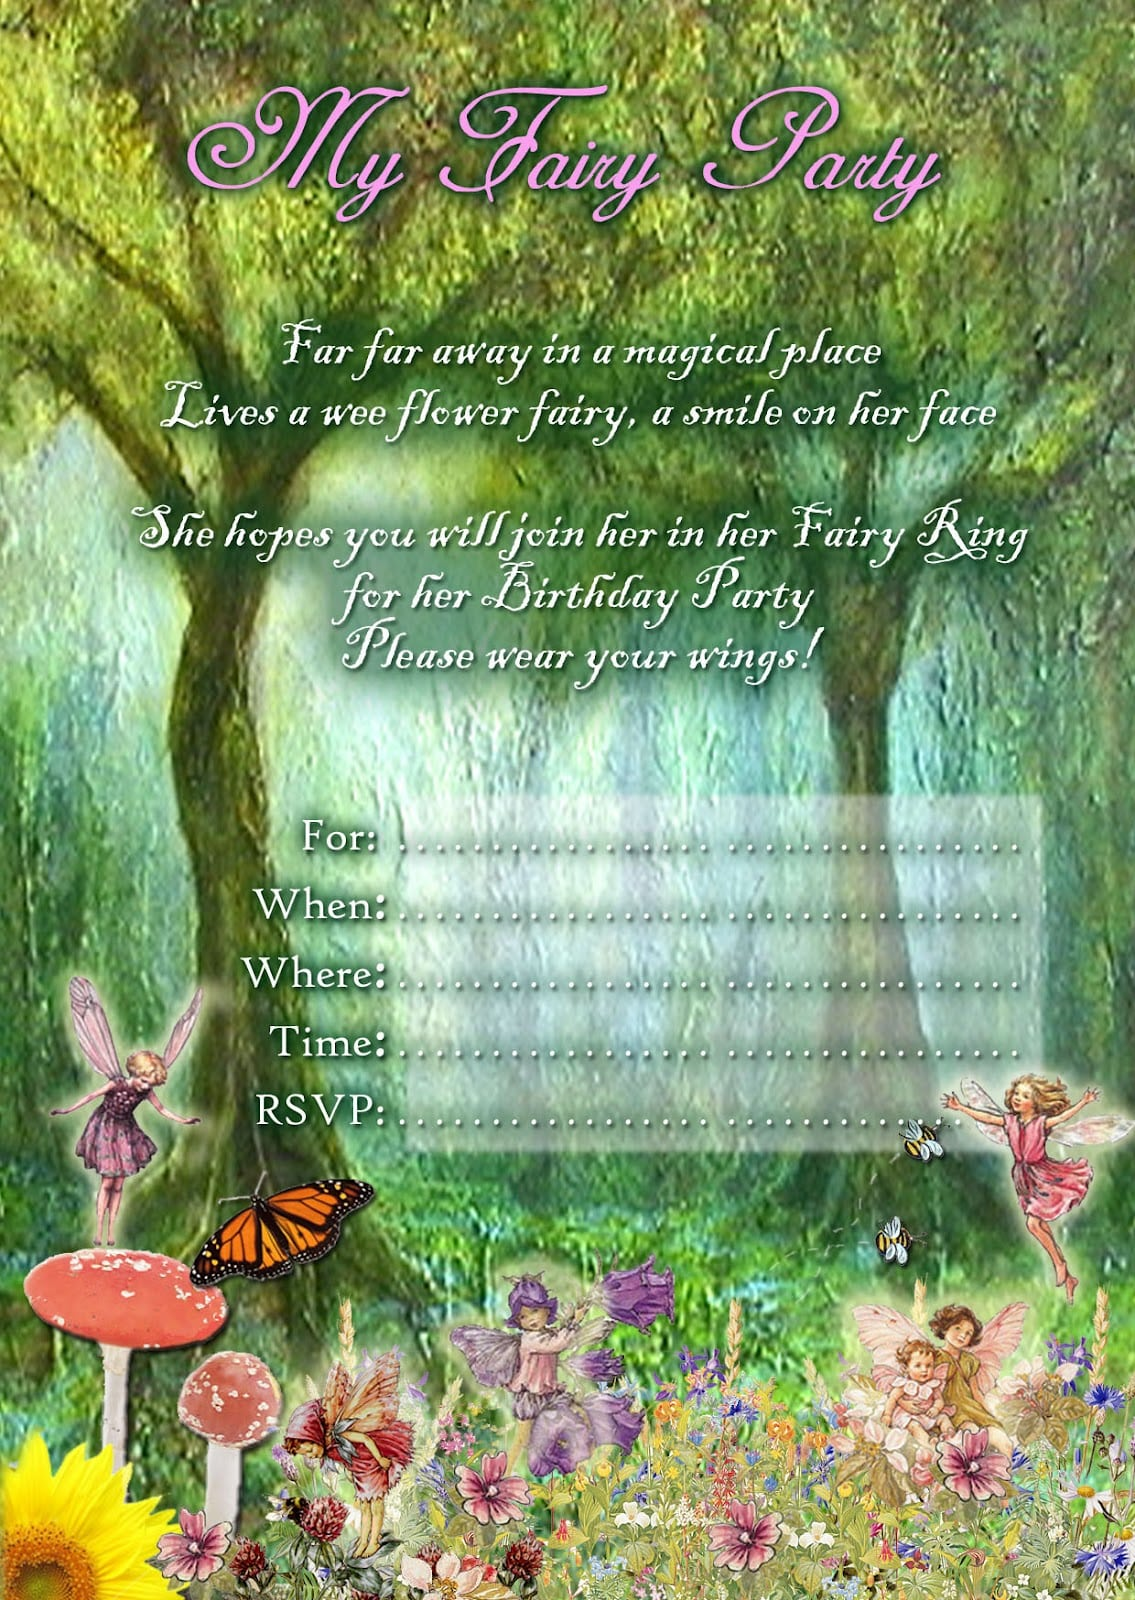 Fairy Party Invitations Free Printable - Mickey Mouse Invitations ...